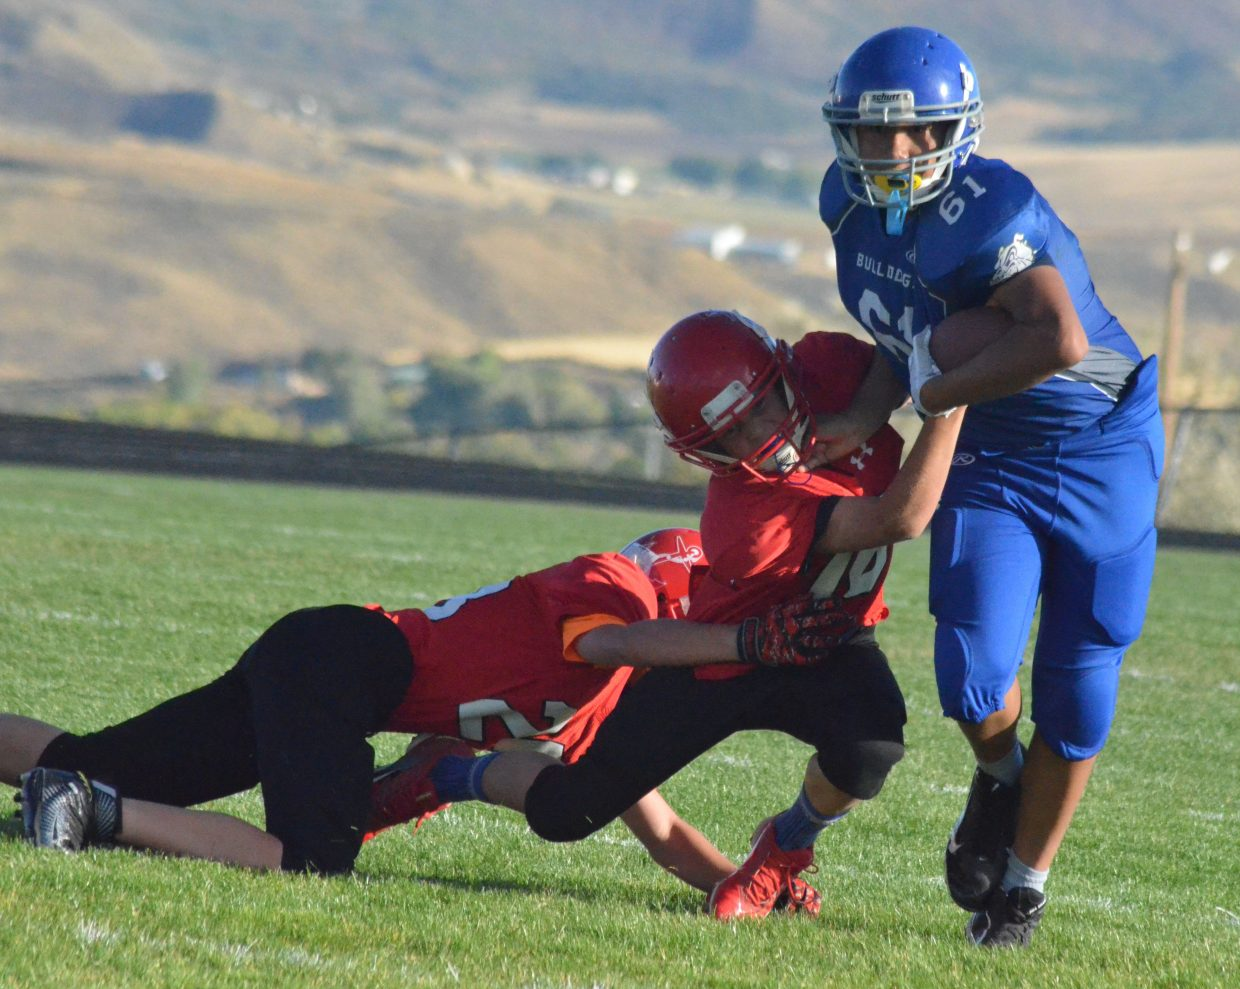 Craig Middle's School's Alexis Barraza drags along Steamboat Springs defenders while making a rush.